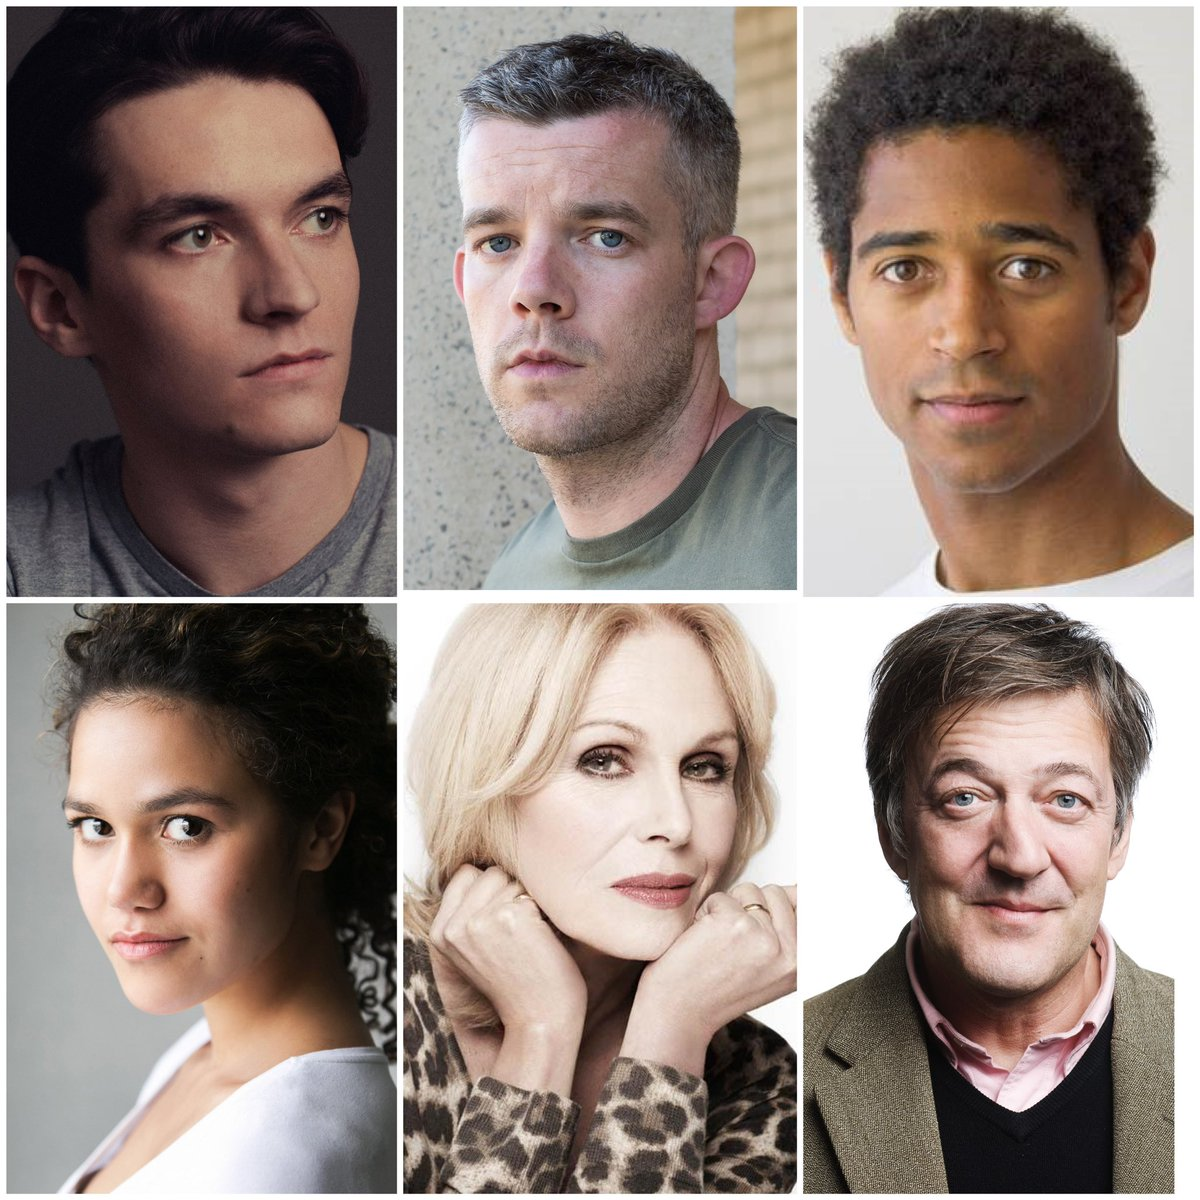 So excited! Alfred Enoch, Joanna Lumley, @EmmaKatMcDonald, @RussellTovey and @StephenFry join Fionn Whitehead for 'The Picture of Dorian Gray', dir. @tamaracharvey. Grab your tickets, support theatre - . @BenSaysWords @HollyPigott @demigrooveUK @EleriBJones